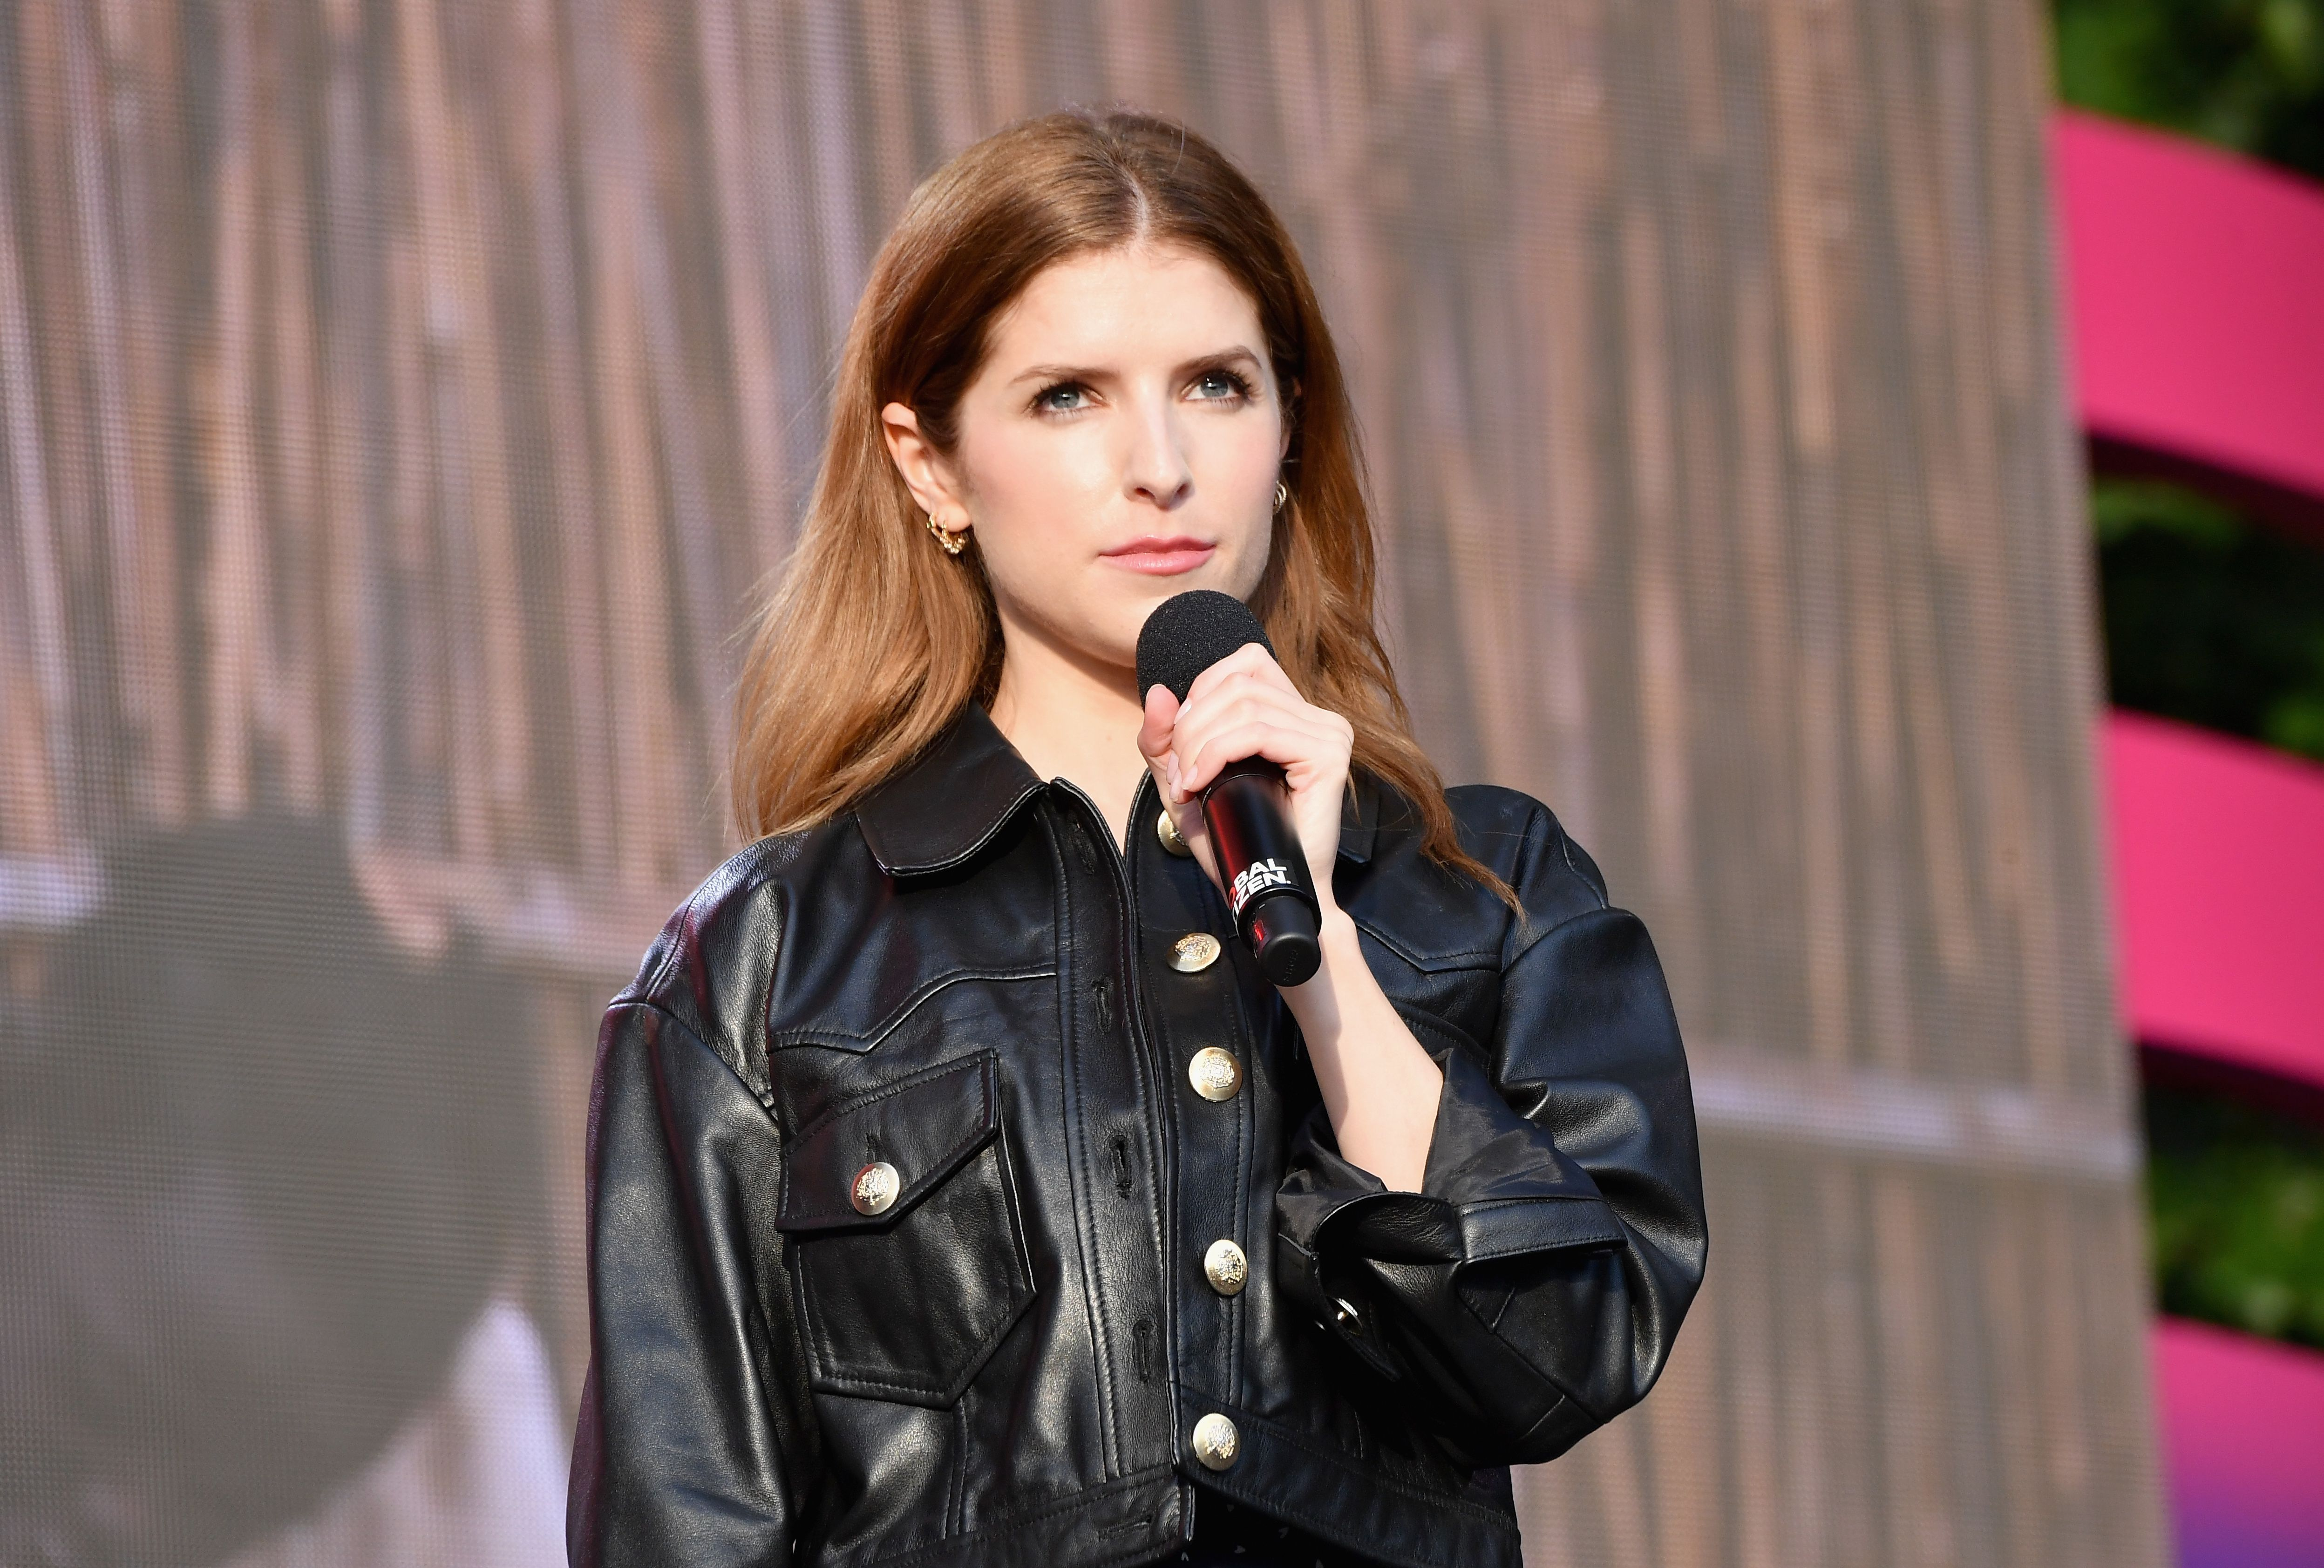 US actress Anna Kendrick speaks onstage at the 2019 Global Citizen Festival: Power The Movement in Central Park in New York on September 28, 2019. (Photo by Angela Weiss / AFP)        (Photo credit should read ANGELA WEISS/AFP/Getty Images)